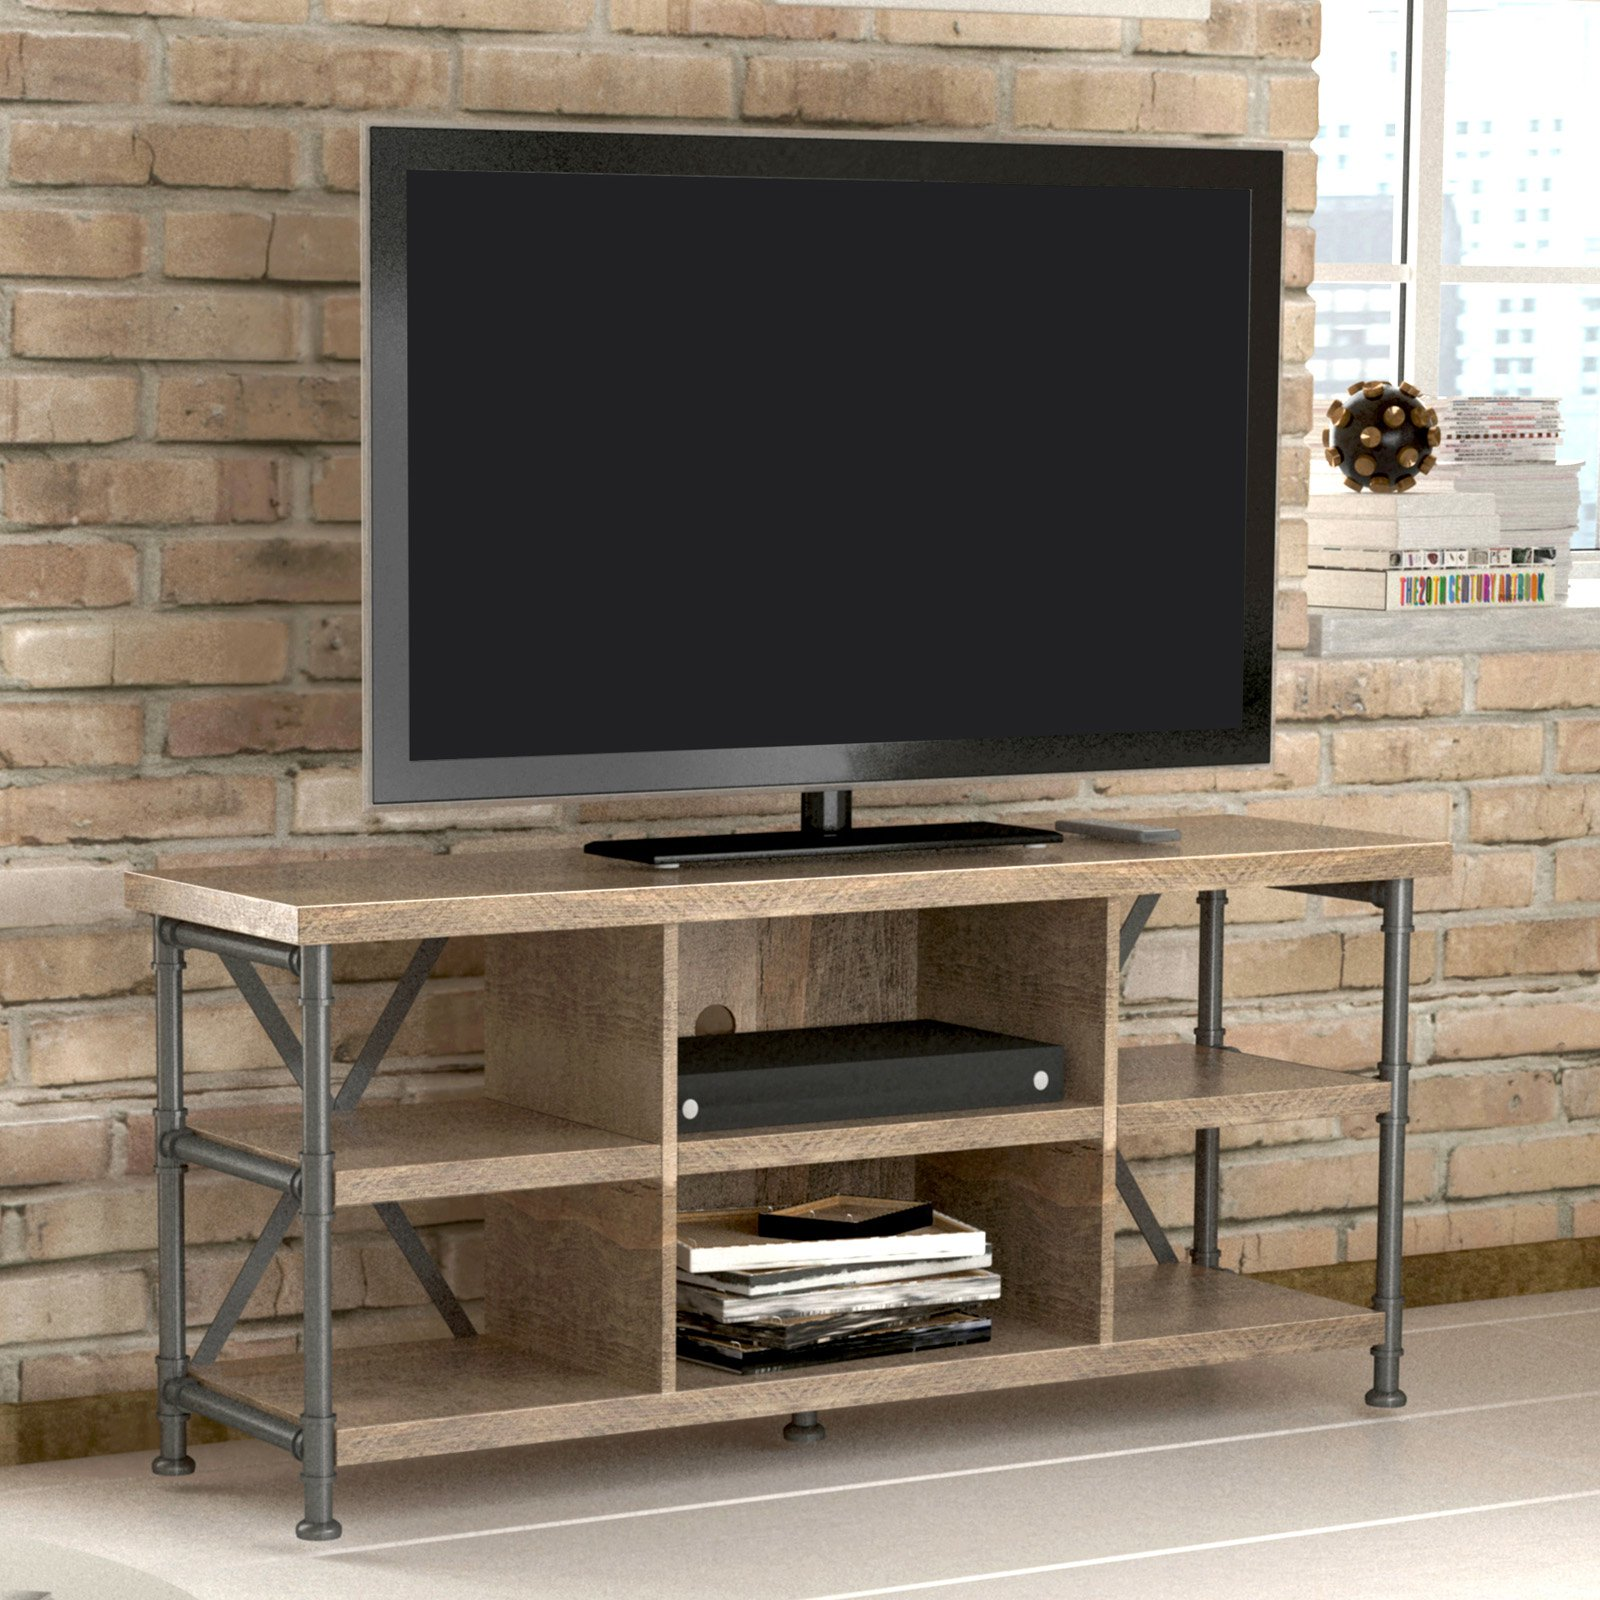 BellO Irondale 54 in. TV Stand - Autumn Driftwood